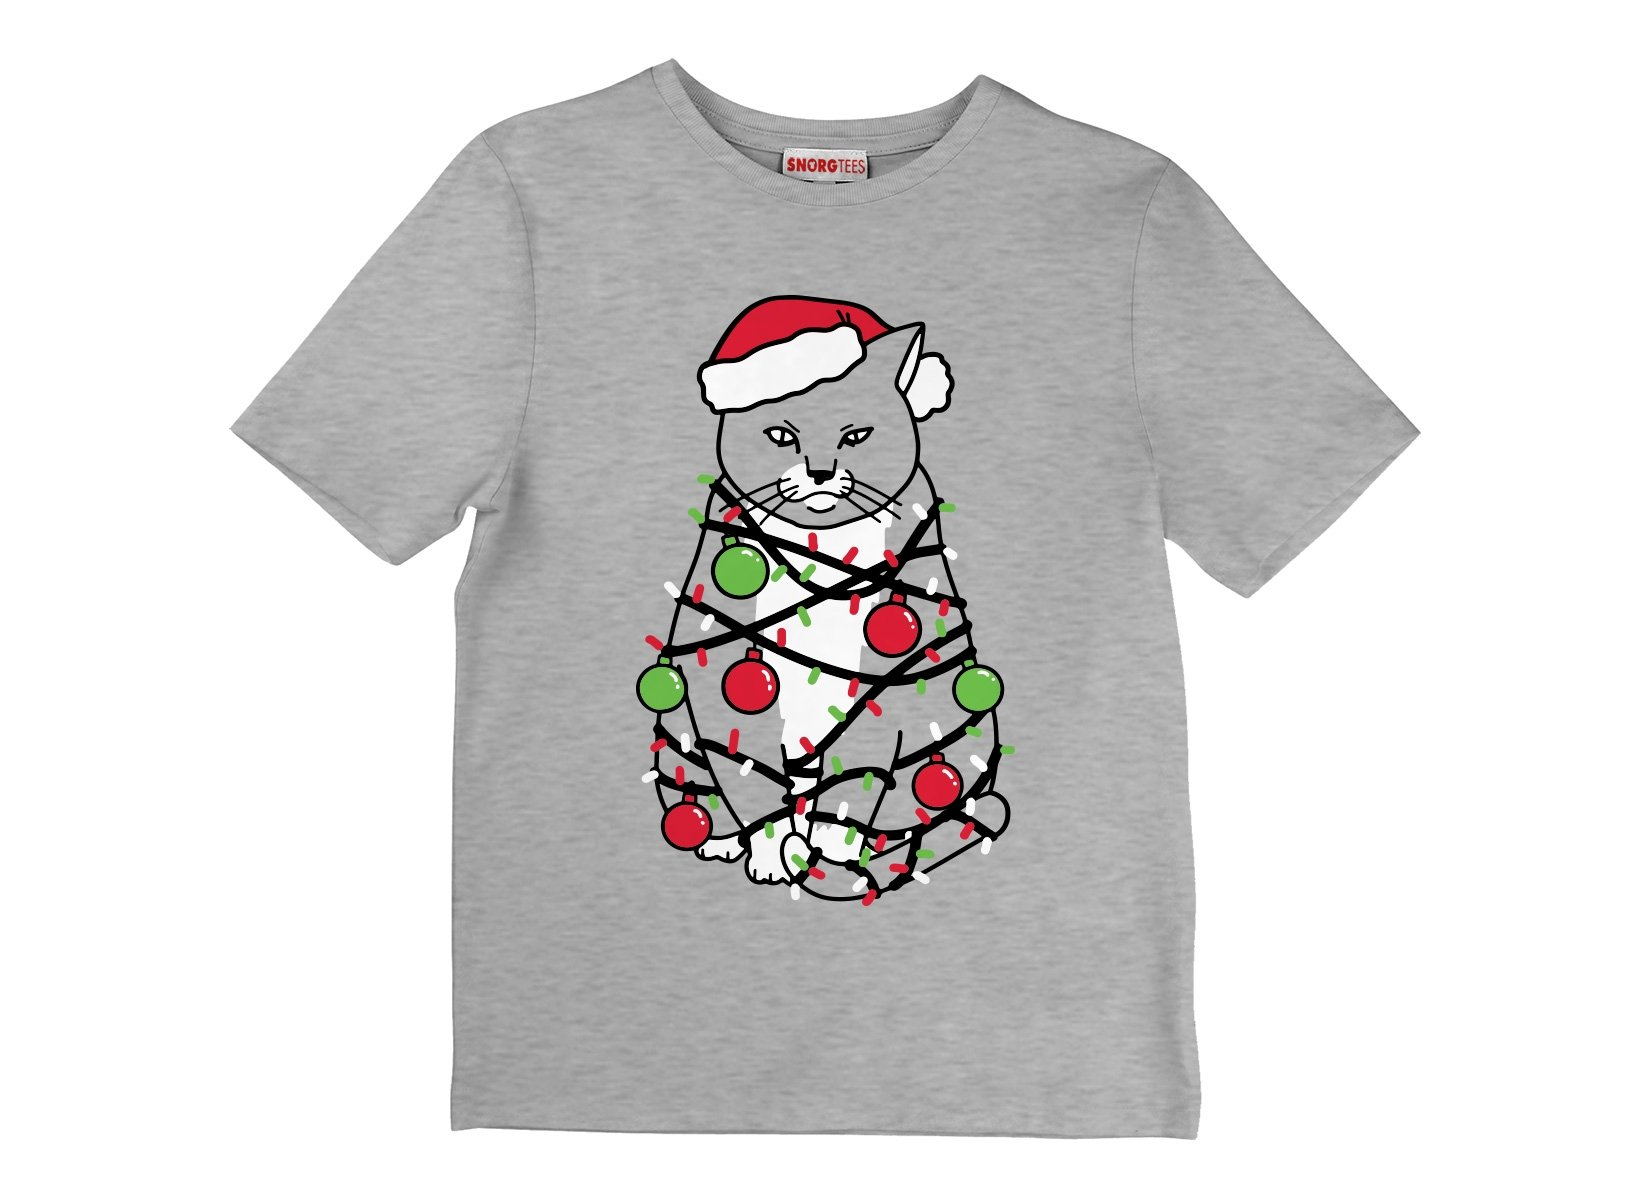 Meowy Christmas on Kids T-Shirt